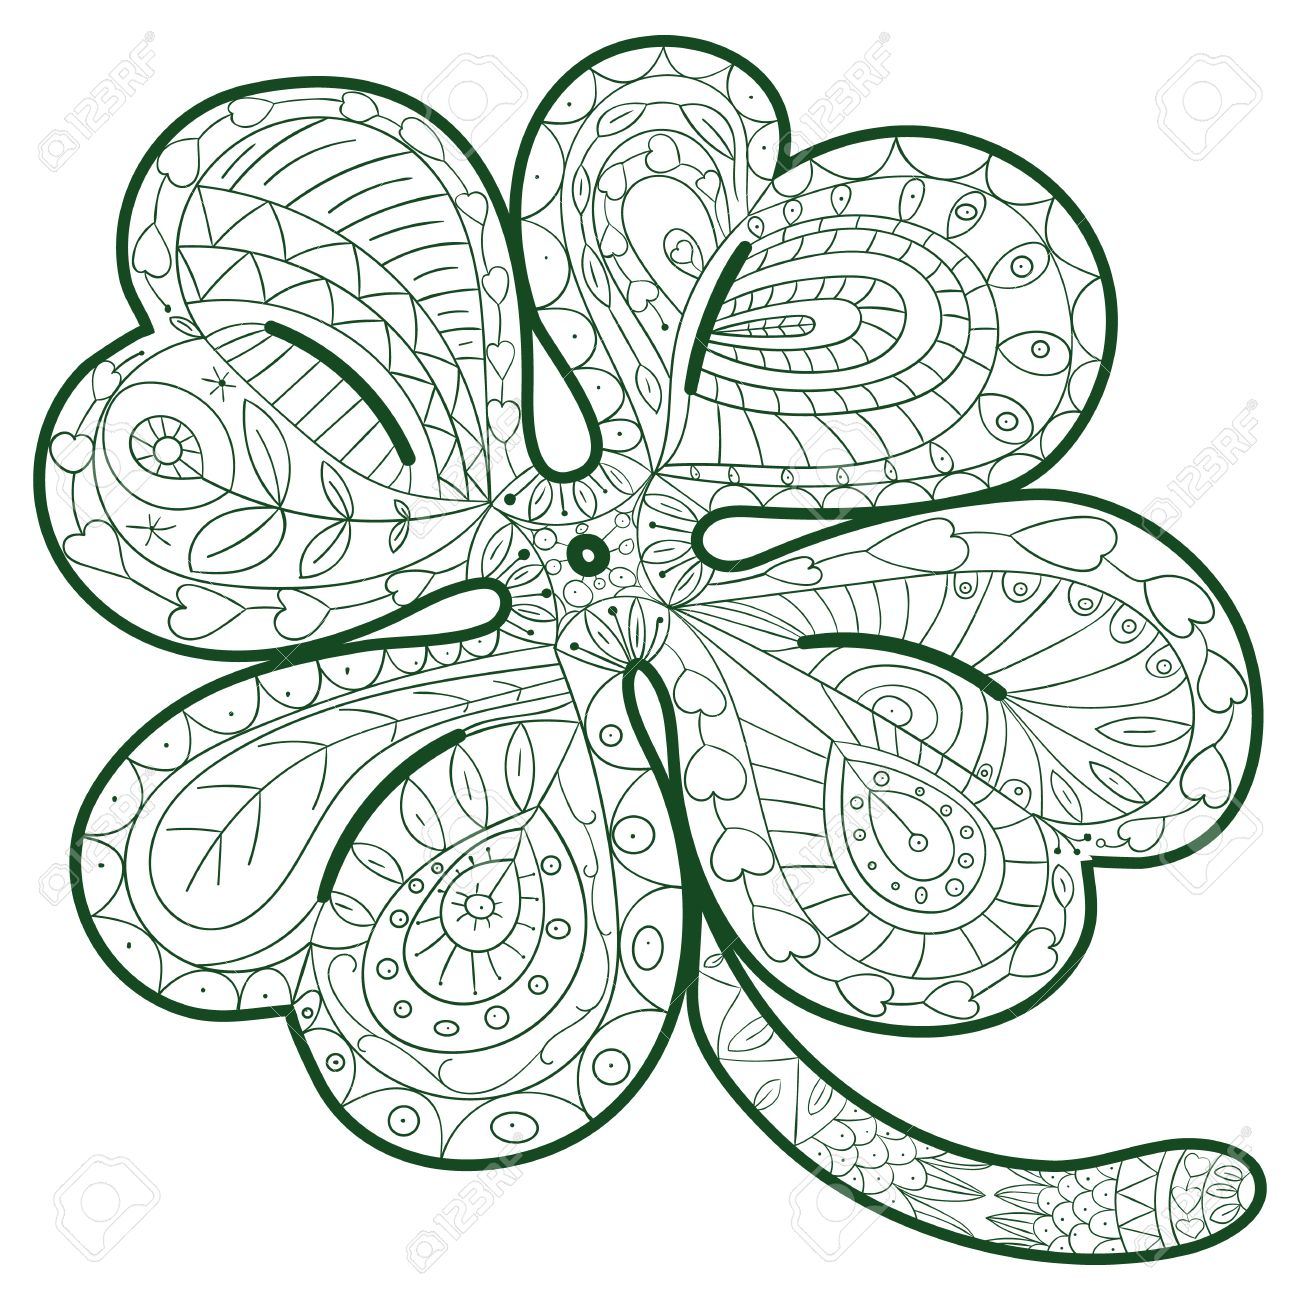 1300x1300 Hand Drawn Four Leaf Clover For Adult Coloring Pages In Doodle